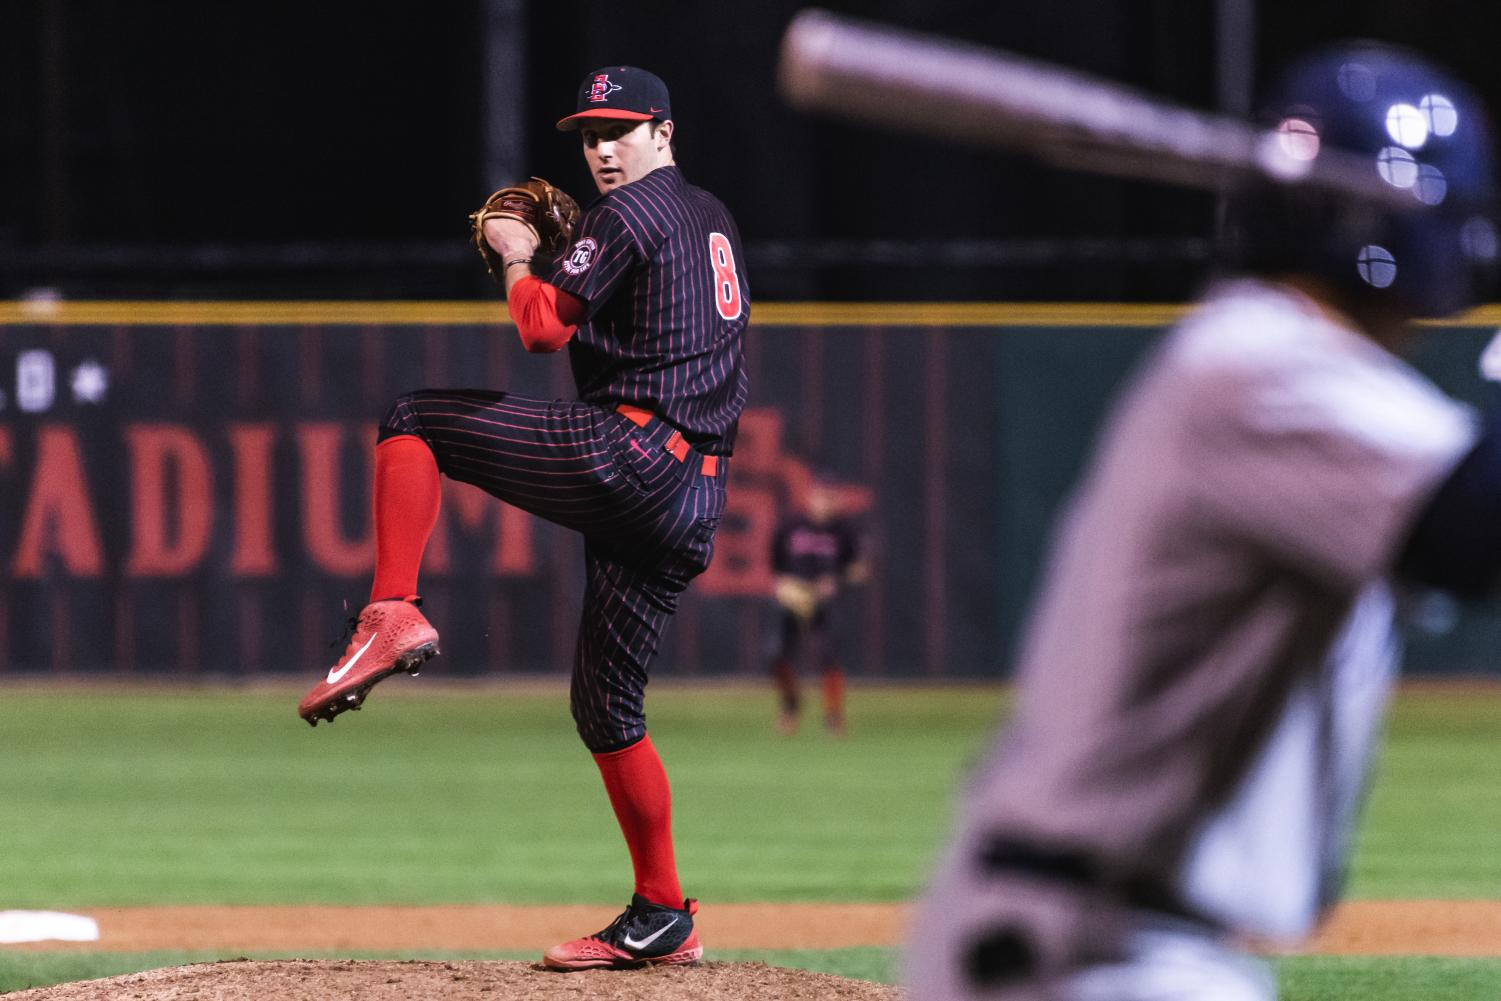 Sophomore pitcher Casey Schmitt pitches during his save against Nevada on March 8 at Tony Gwynn Stadium.